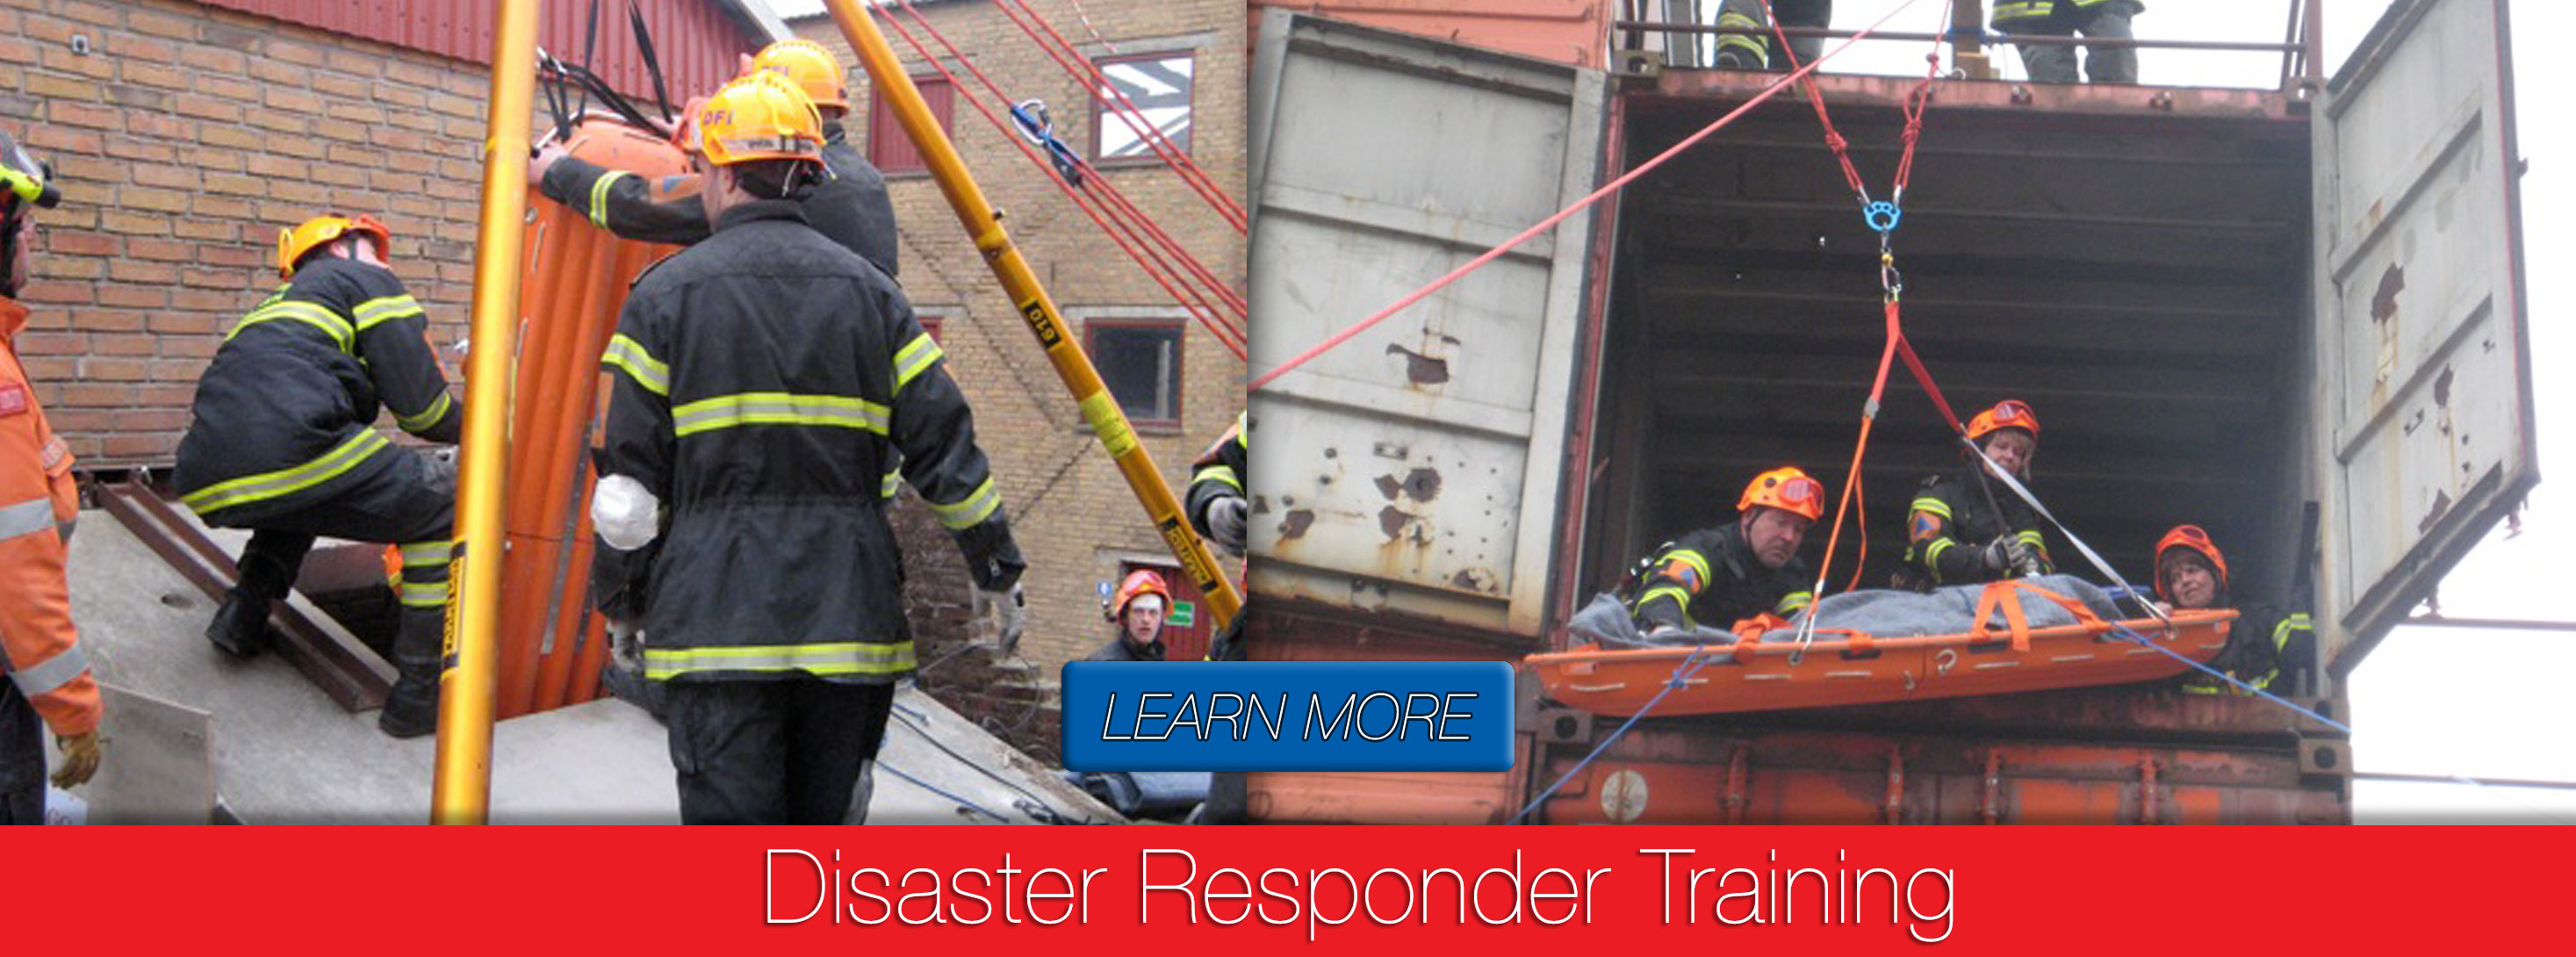 RescUSA- Specialized Training for Disaster Responders